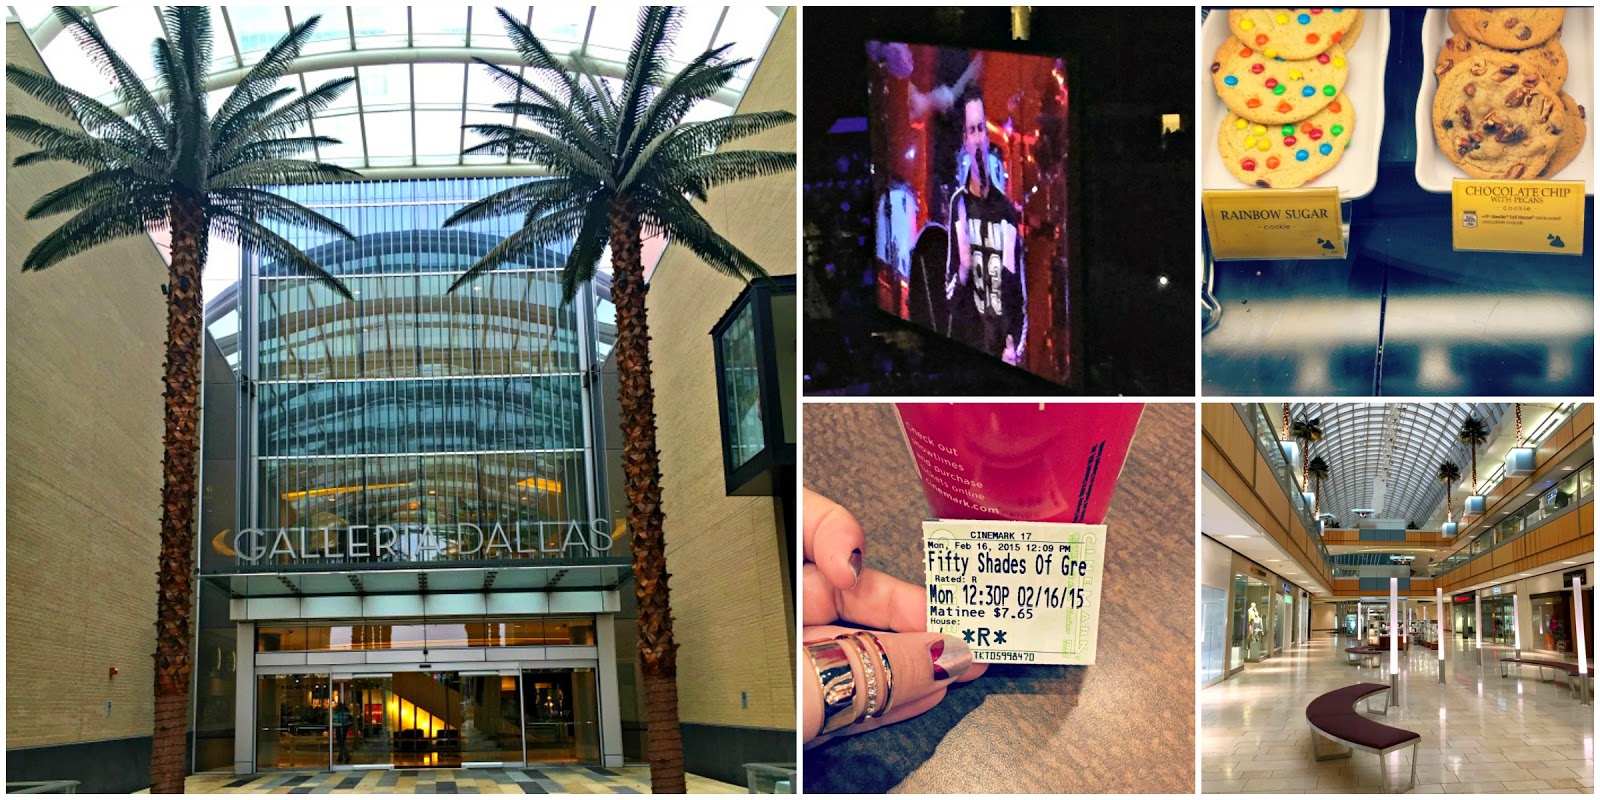 A day in Dallas, Maroon 5 concert, Dallas Galleria, Fifty Shades of Grey!